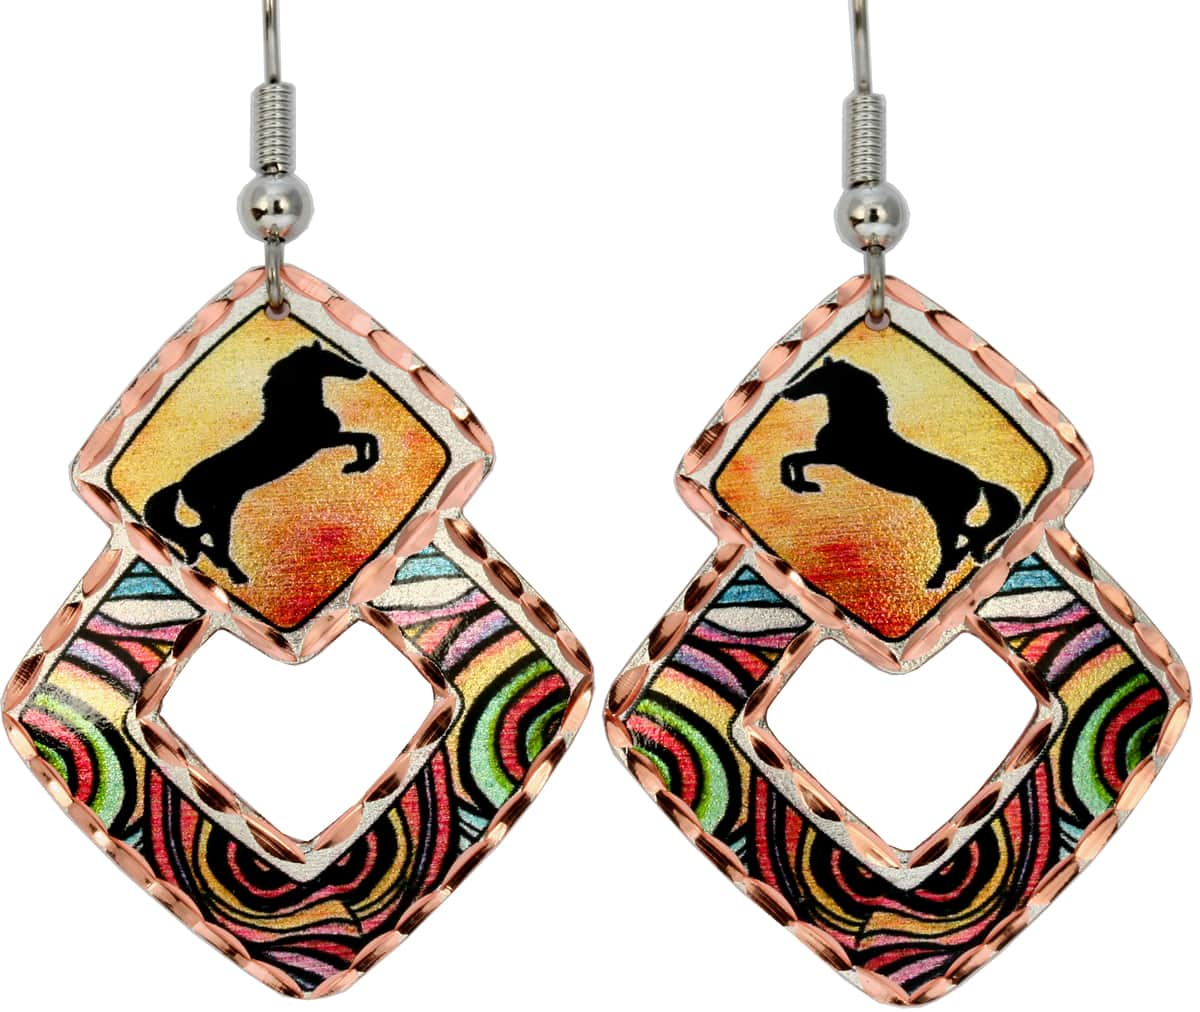 Horse Earrings, Art Jewelry for Women